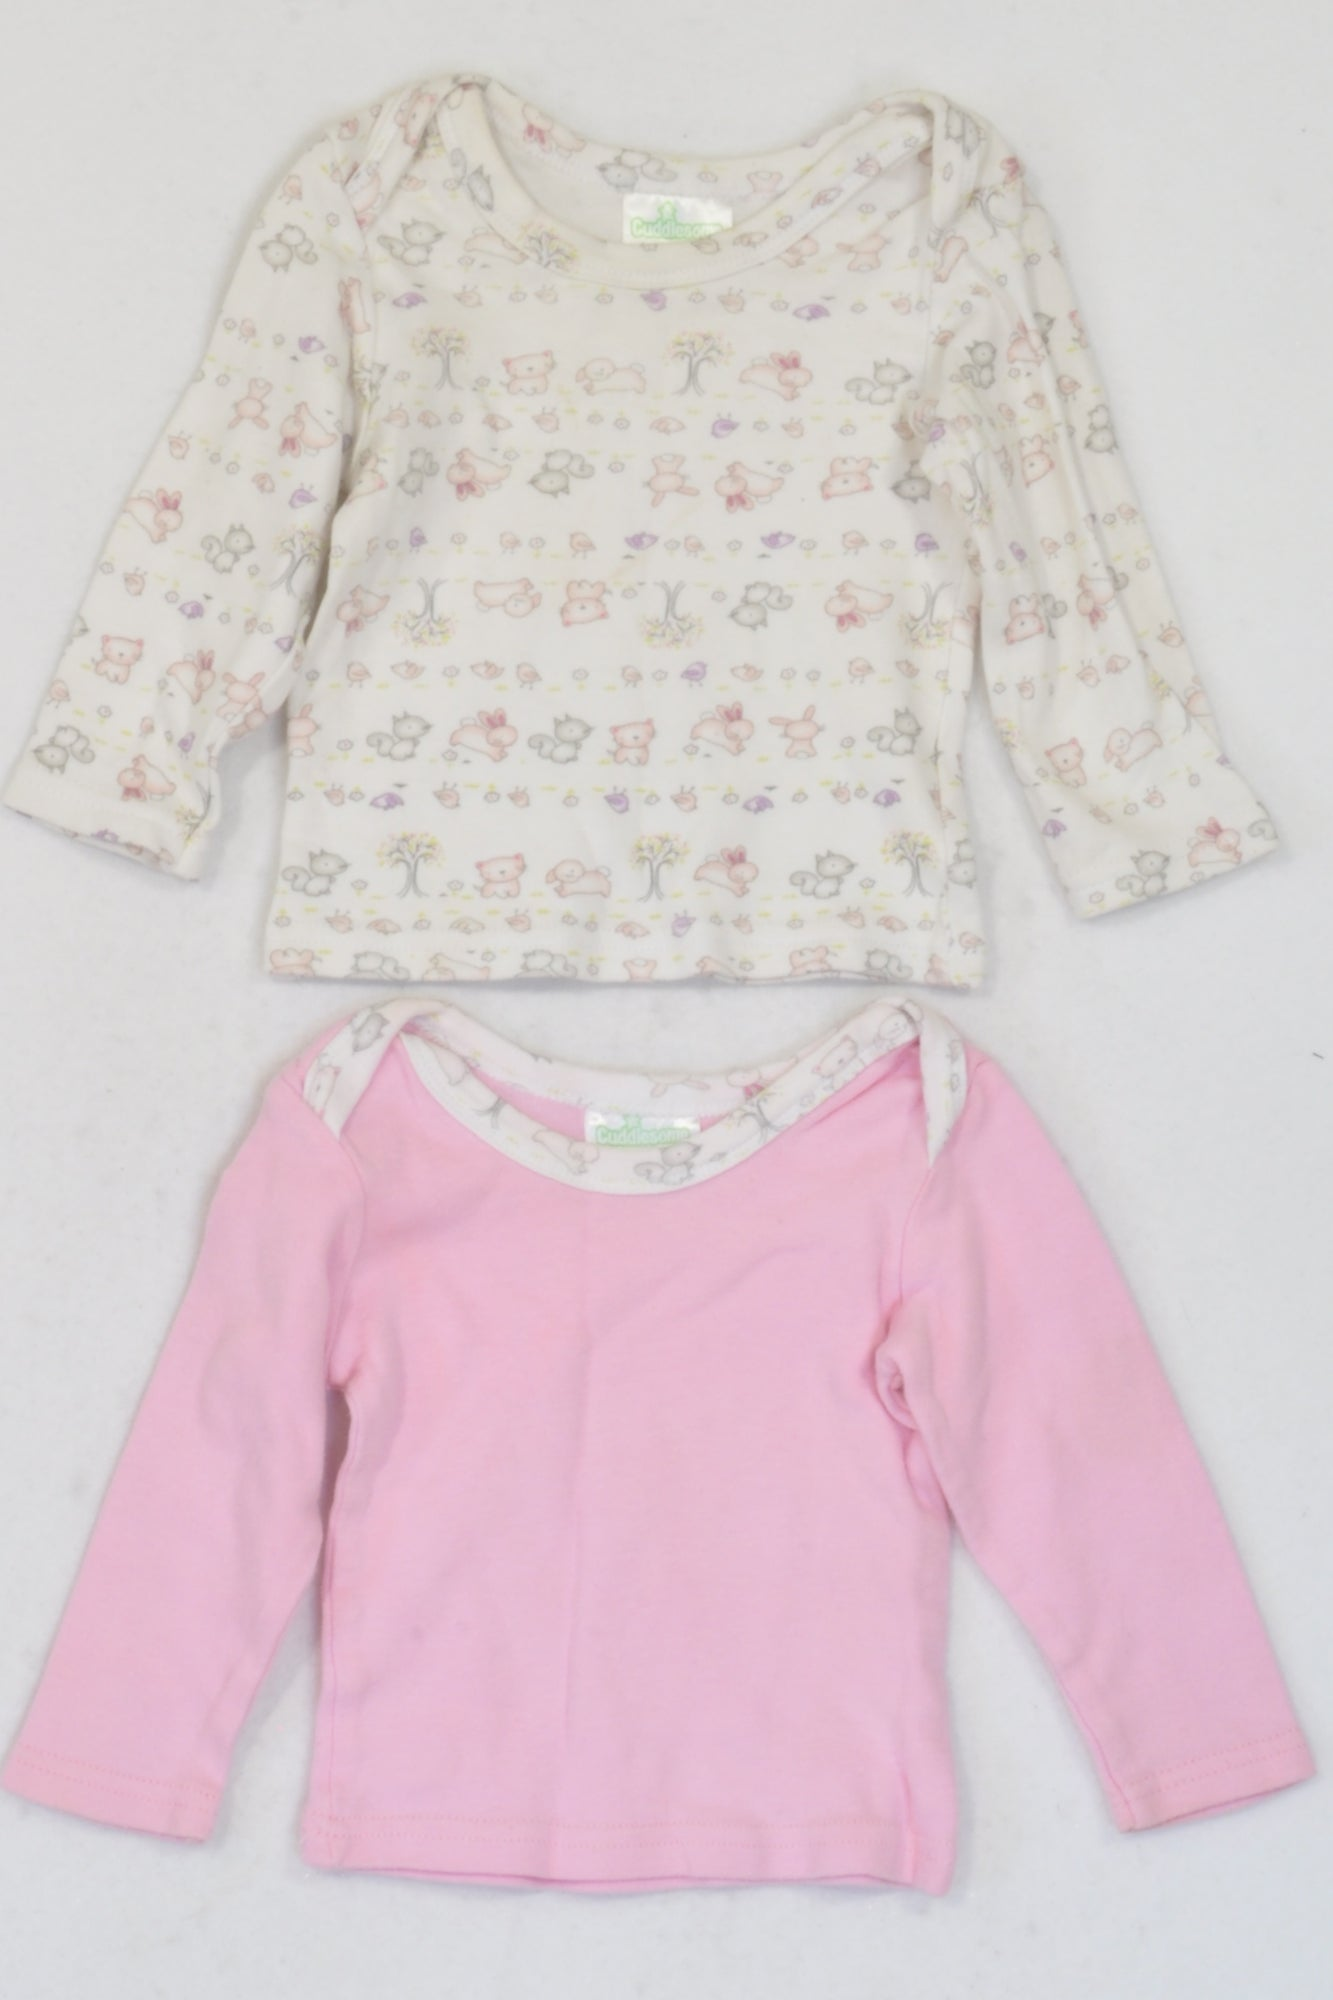 Cuddlesome Pink & White Garden Animals Long Sleeve 2 Pack Top Girls 3-6 months